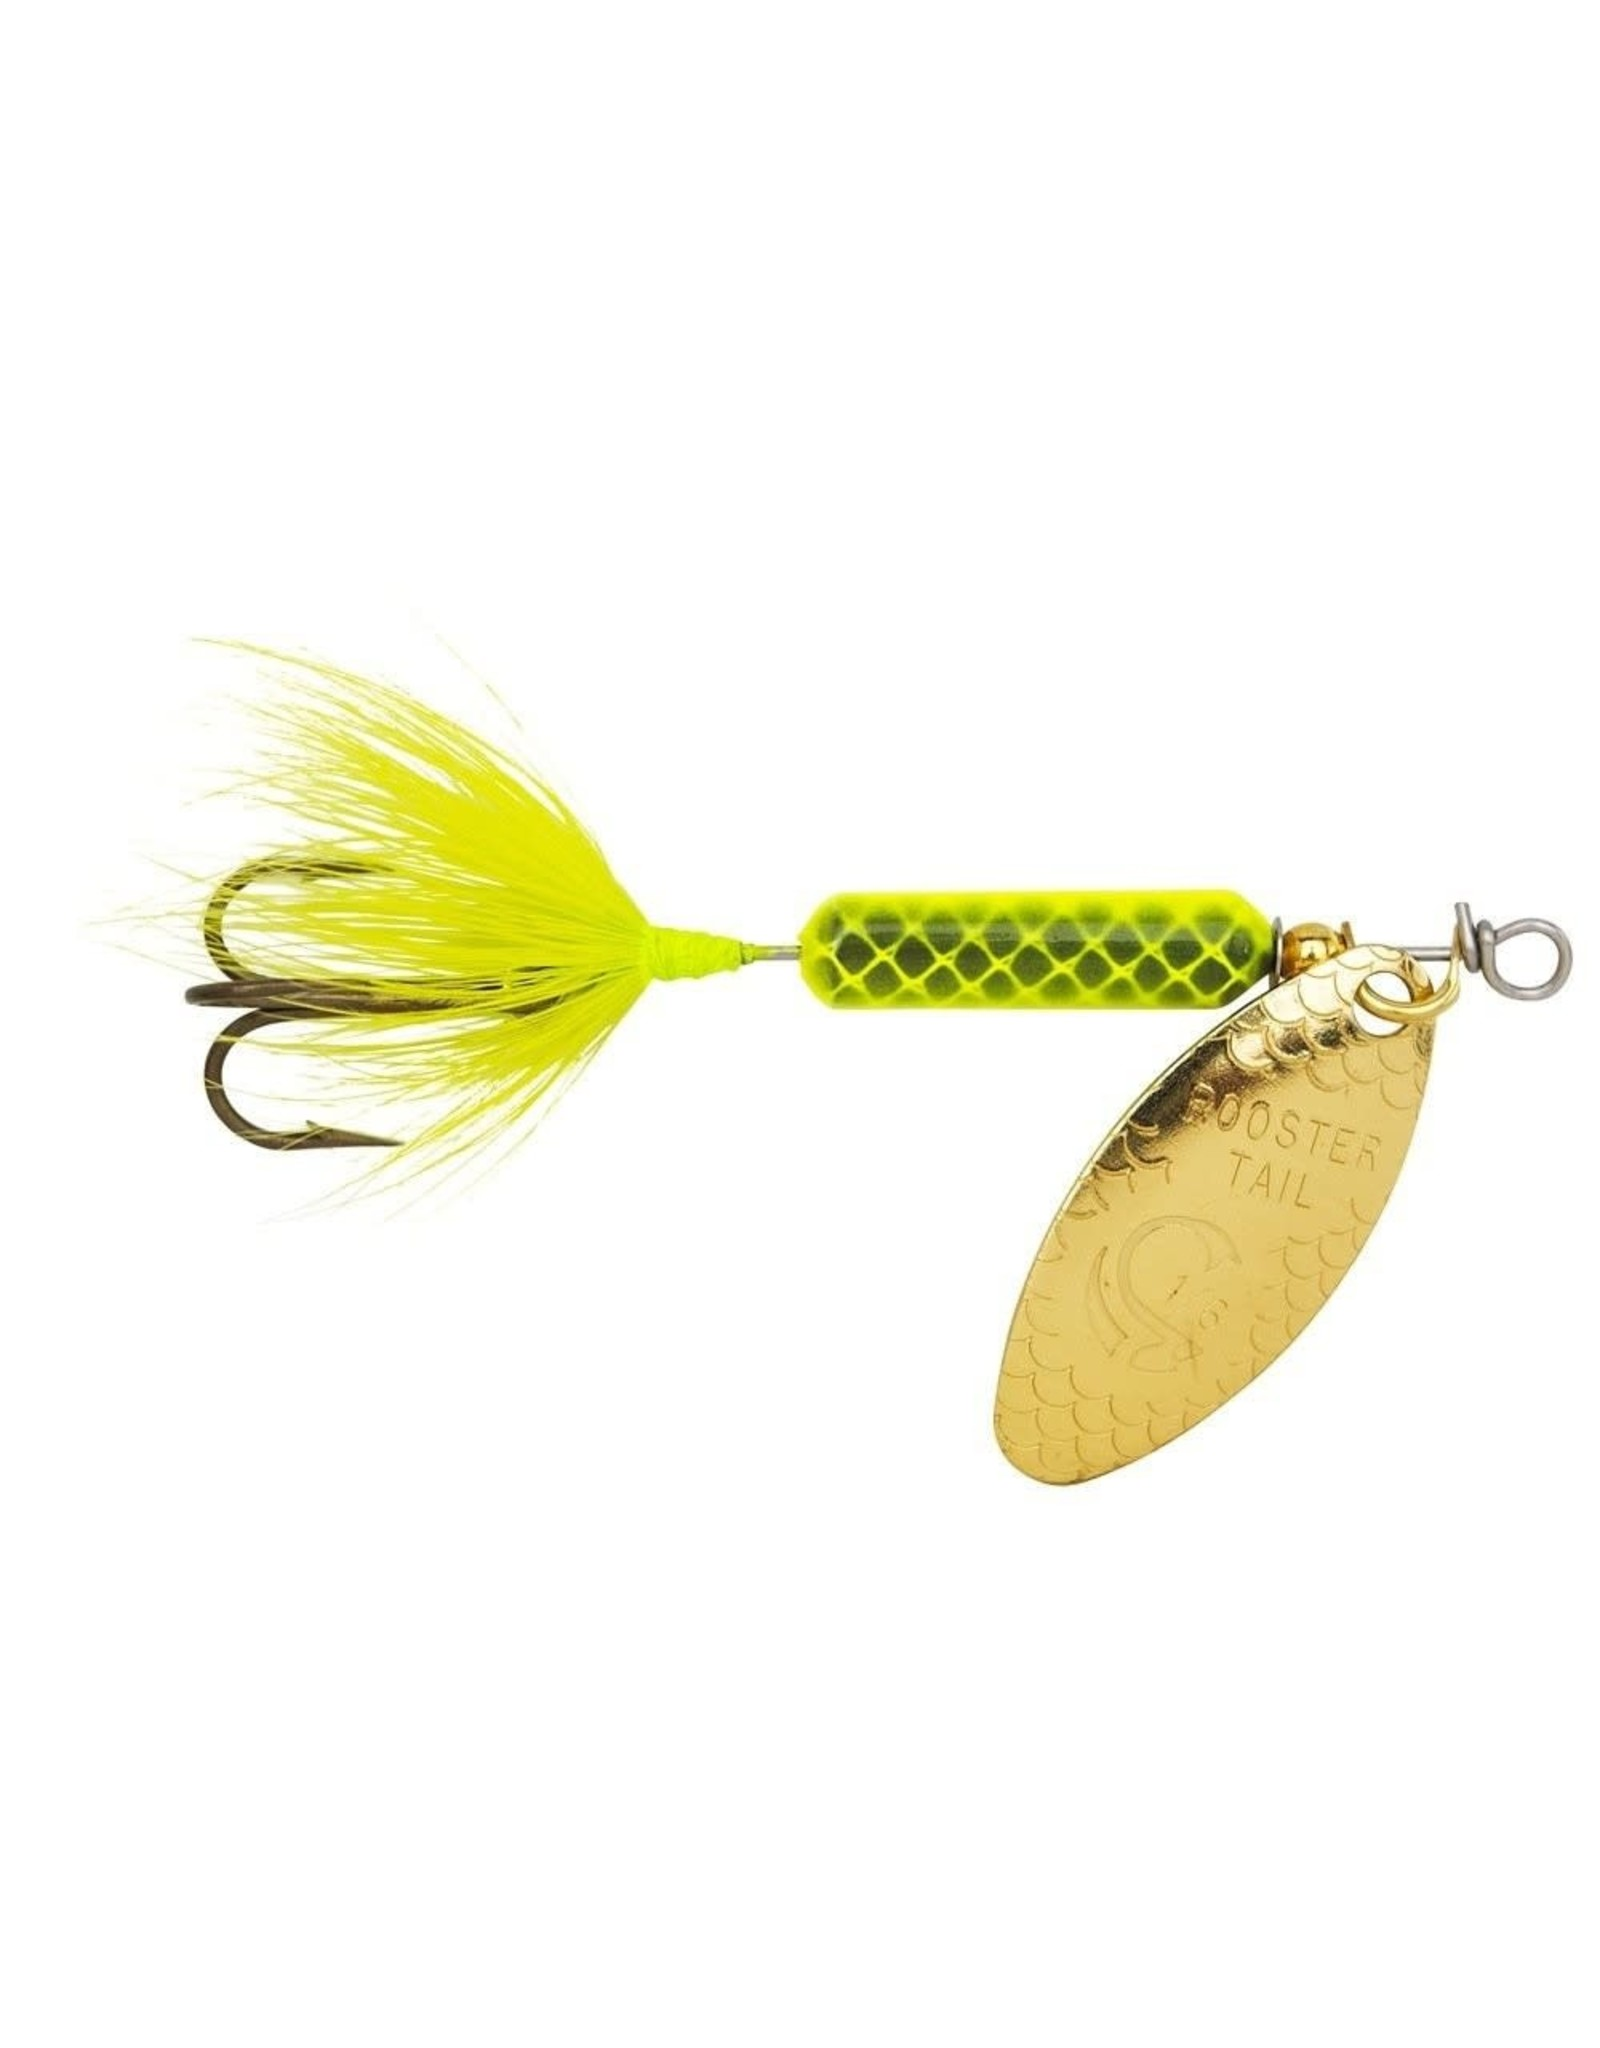 YAKIMA BAIT COMPANY Rooster Tail Spinners 1/16 oz.